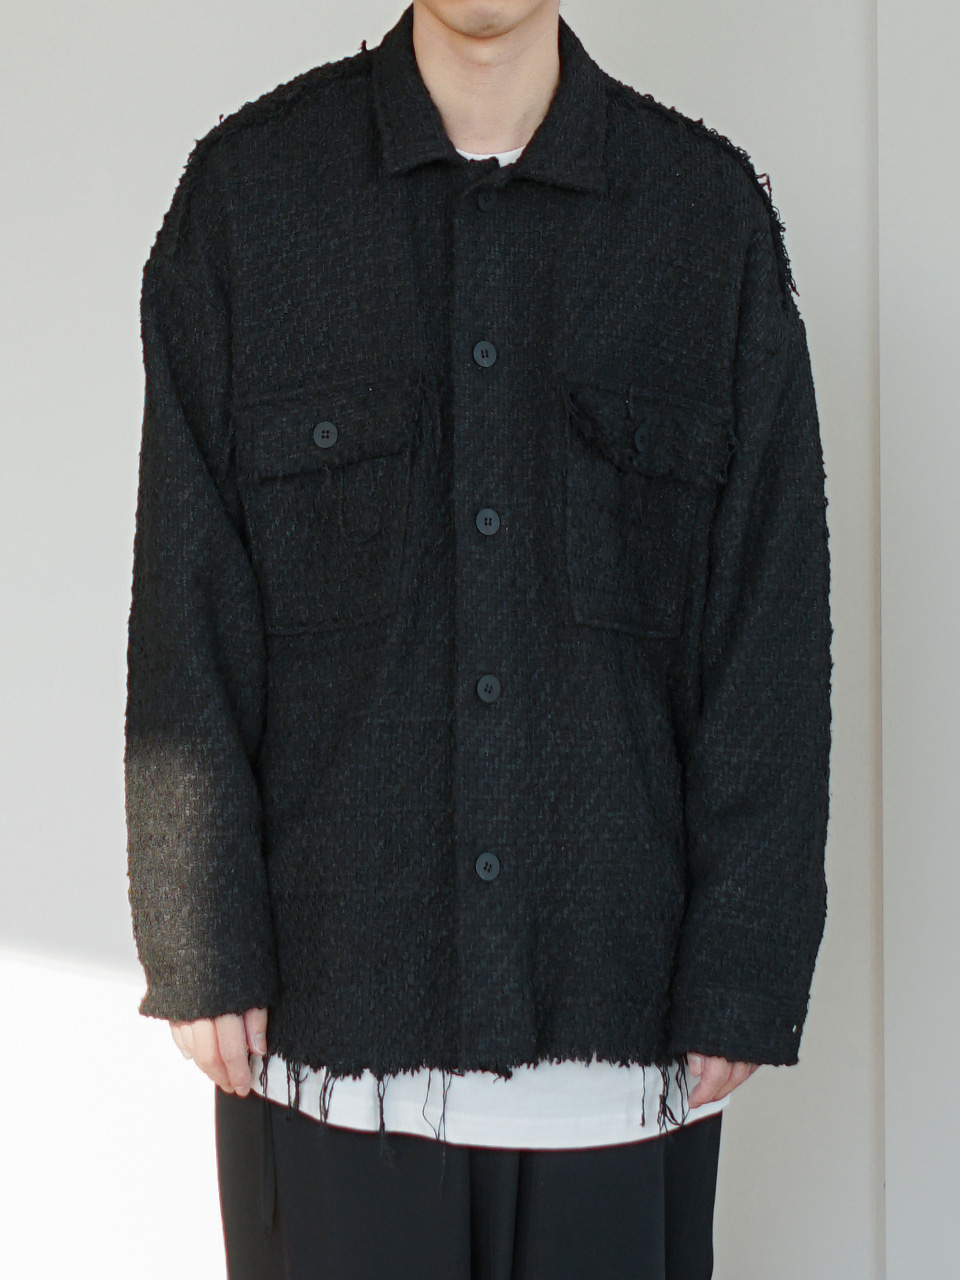 Jacno Tweed Shirt Jacket (2color)